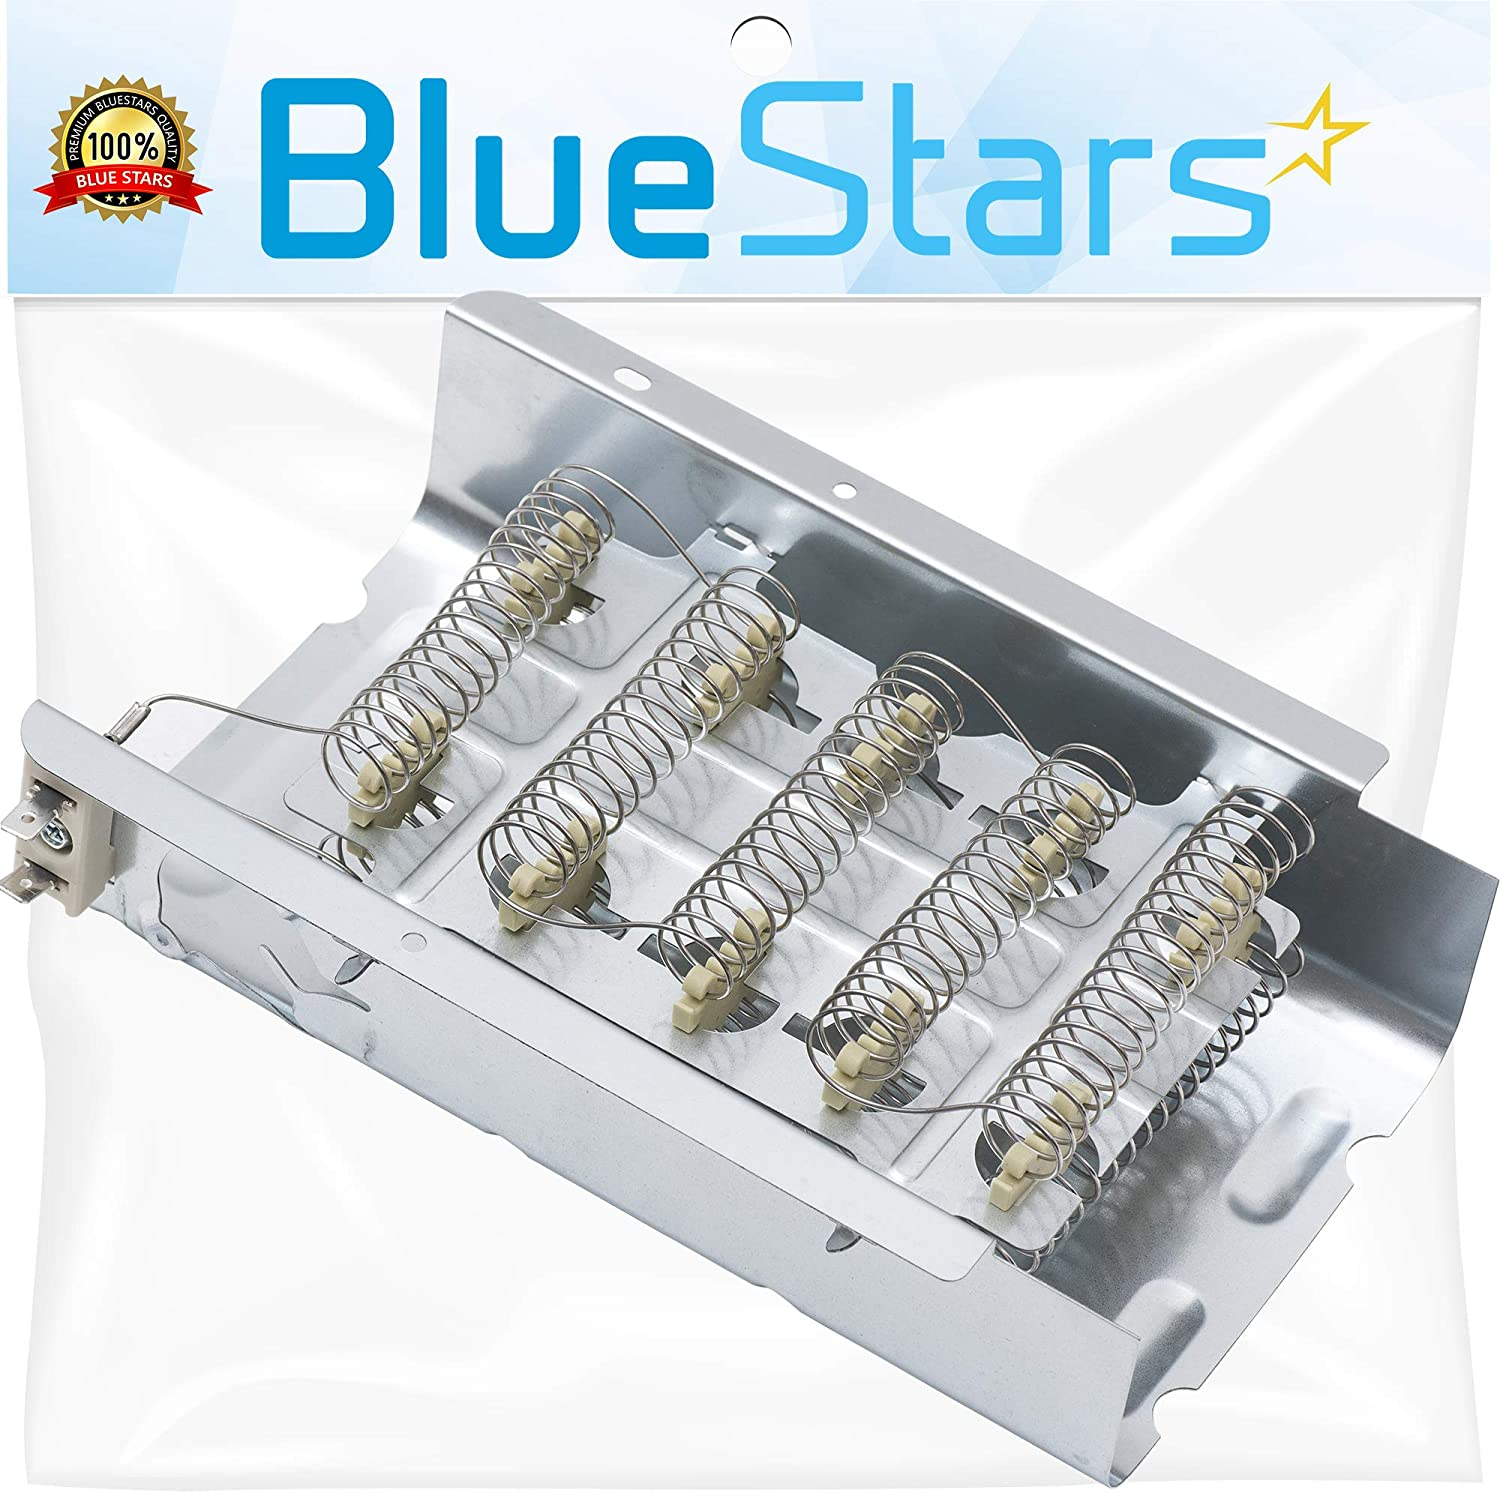 Ultra Durable 279838 Dryer Heating Element Replacement Part by Blue Stars – Exact Fit For Whirlpool Kenmore Maytag Dryers – Replaces 279837 8565582 3398064 3403585 AP3094254 PS3343130